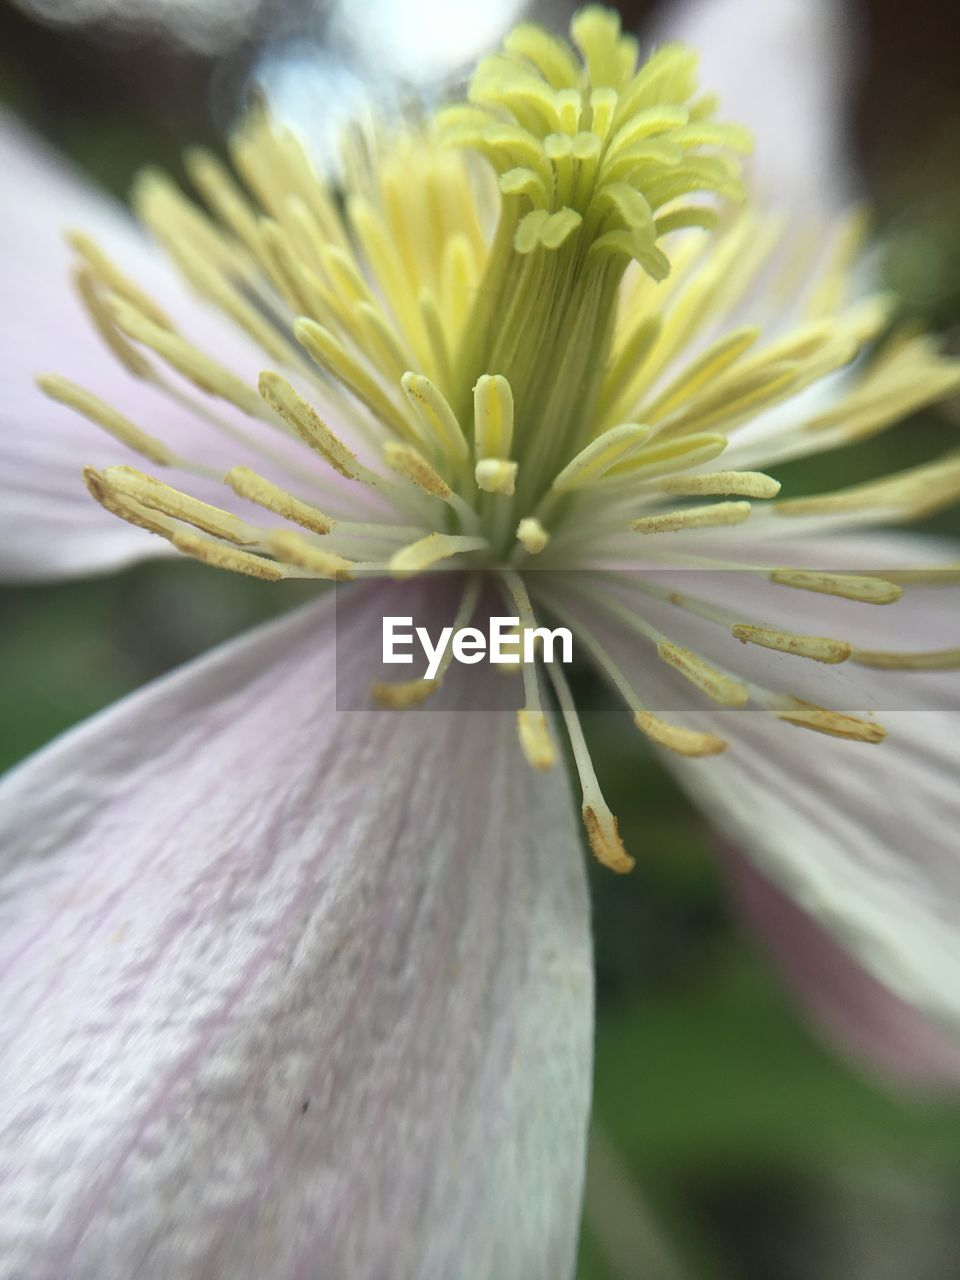 flowering plant, flower, vulnerability, fragility, plant, close-up, freshness, beauty in nature, growth, petal, inflorescence, flower head, focus on foreground, no people, nature, day, pollen, selective focus, white color, sepal